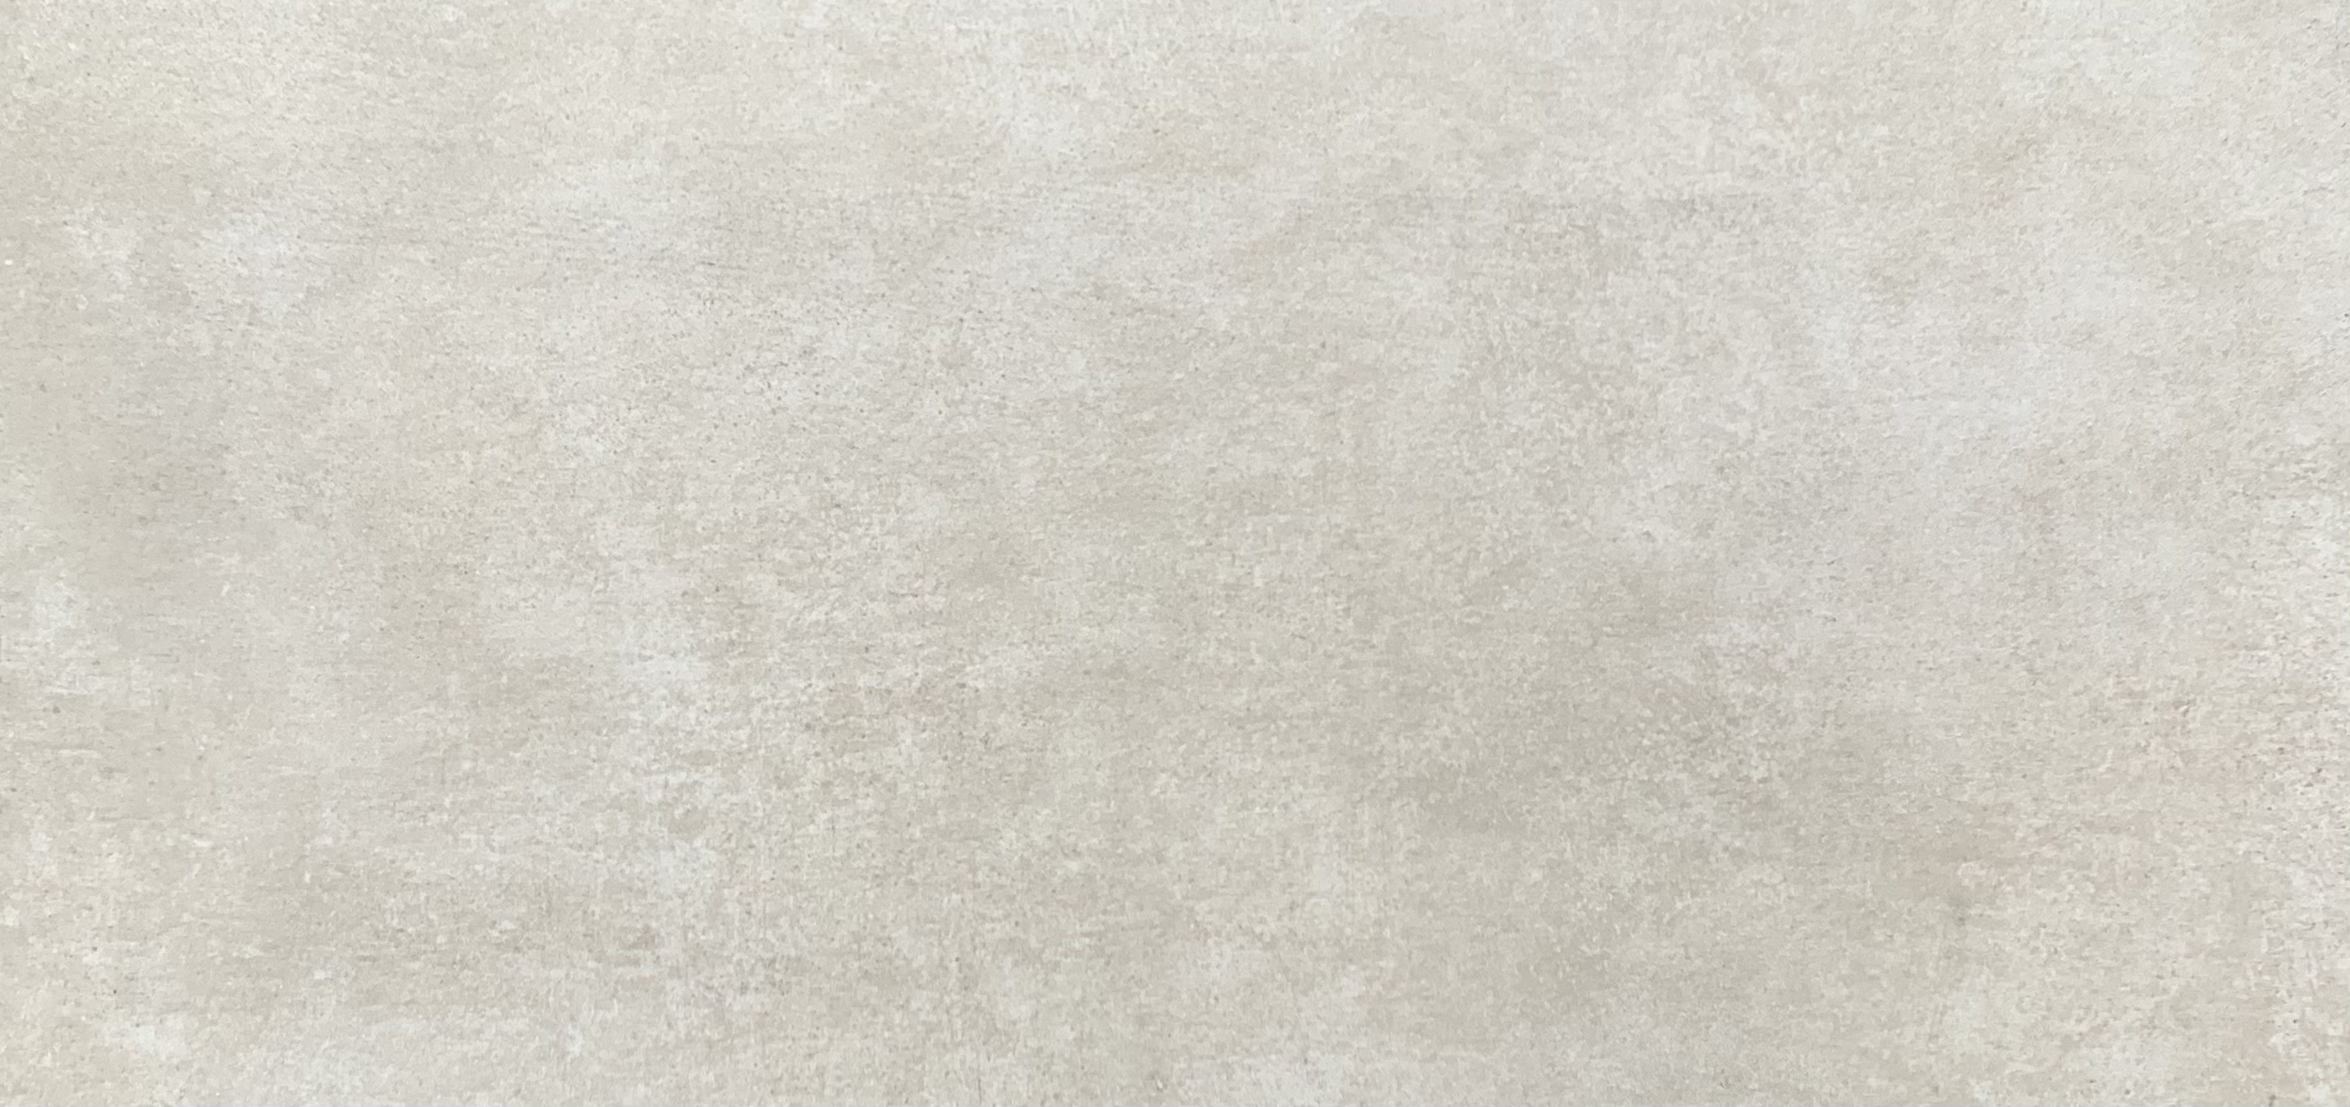 Rossore Porcelain 900 x 450 x 20mm (21.87m2 = 54pc)